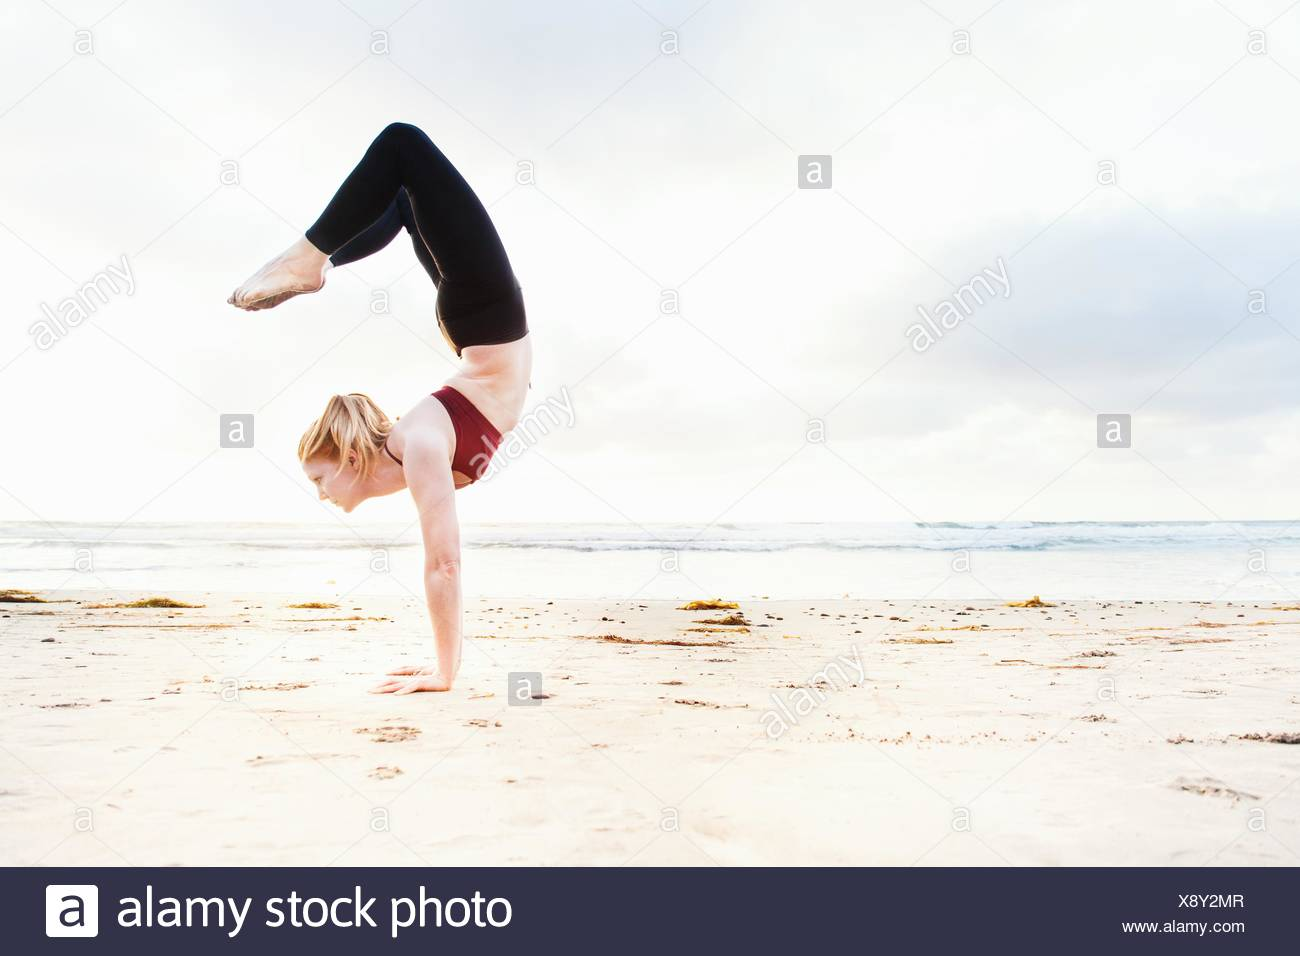 Mid adult woman practicing handstand yoga position on beach - Stock Image